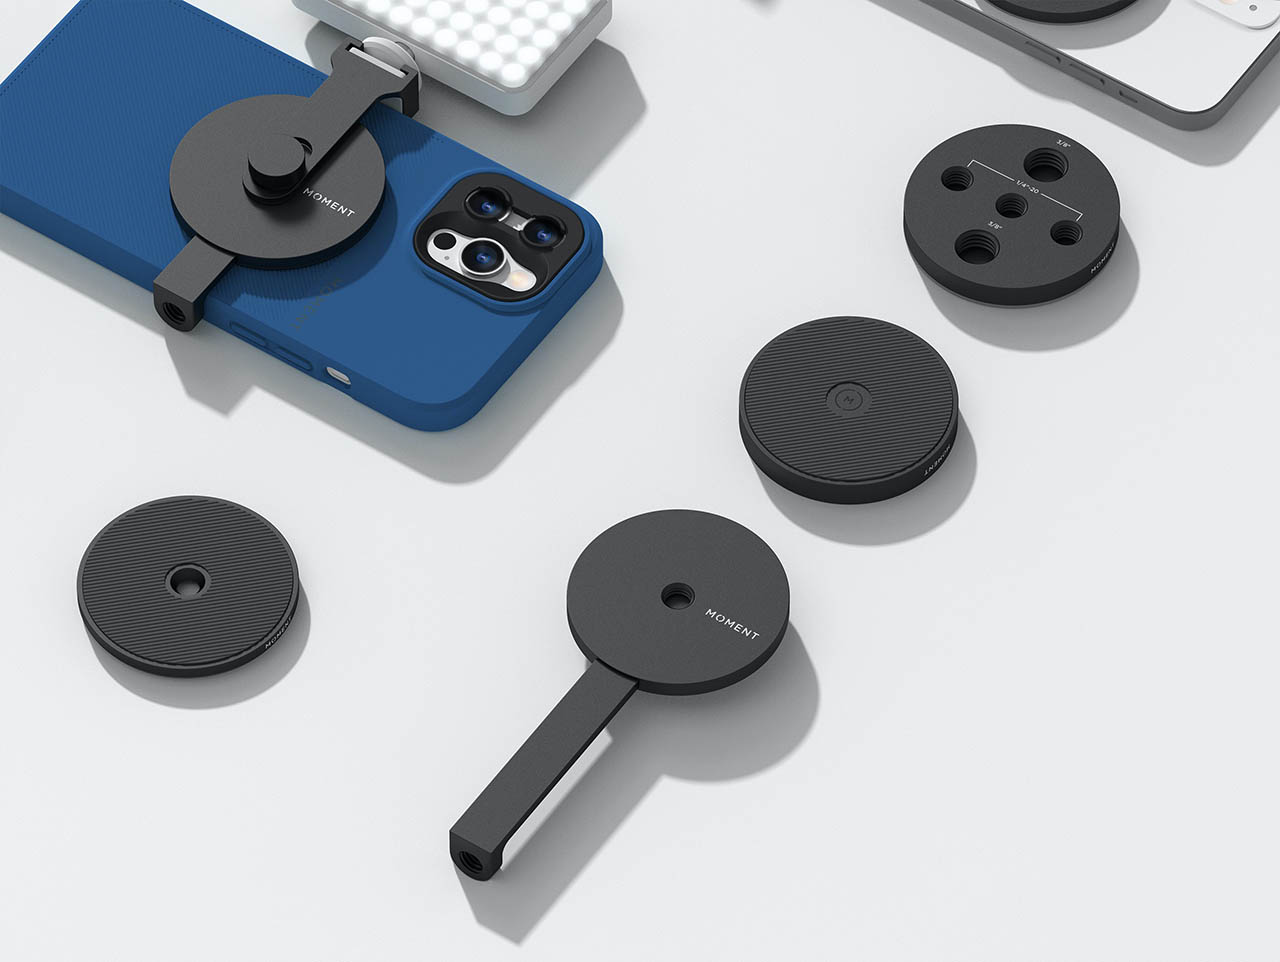 Moment MagSafe mounts